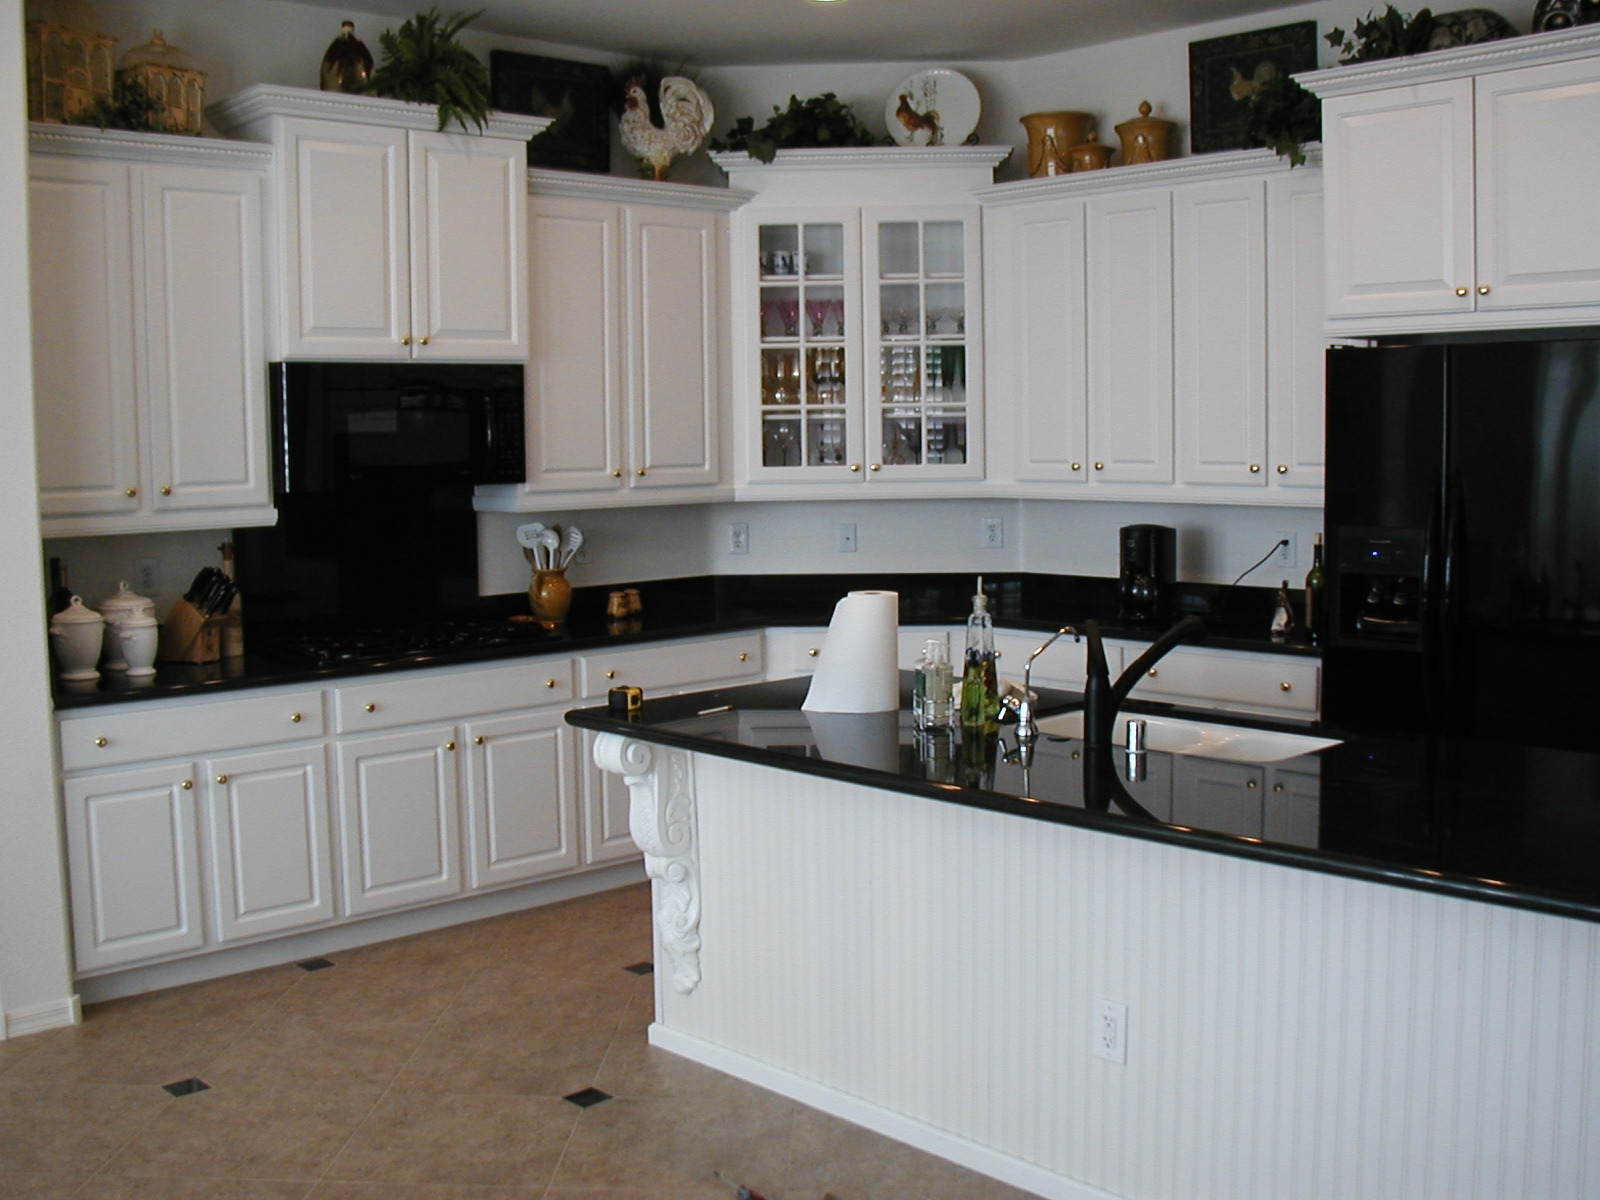 Are white cabinets ever stylish?? (laminated, moulding, walls ...